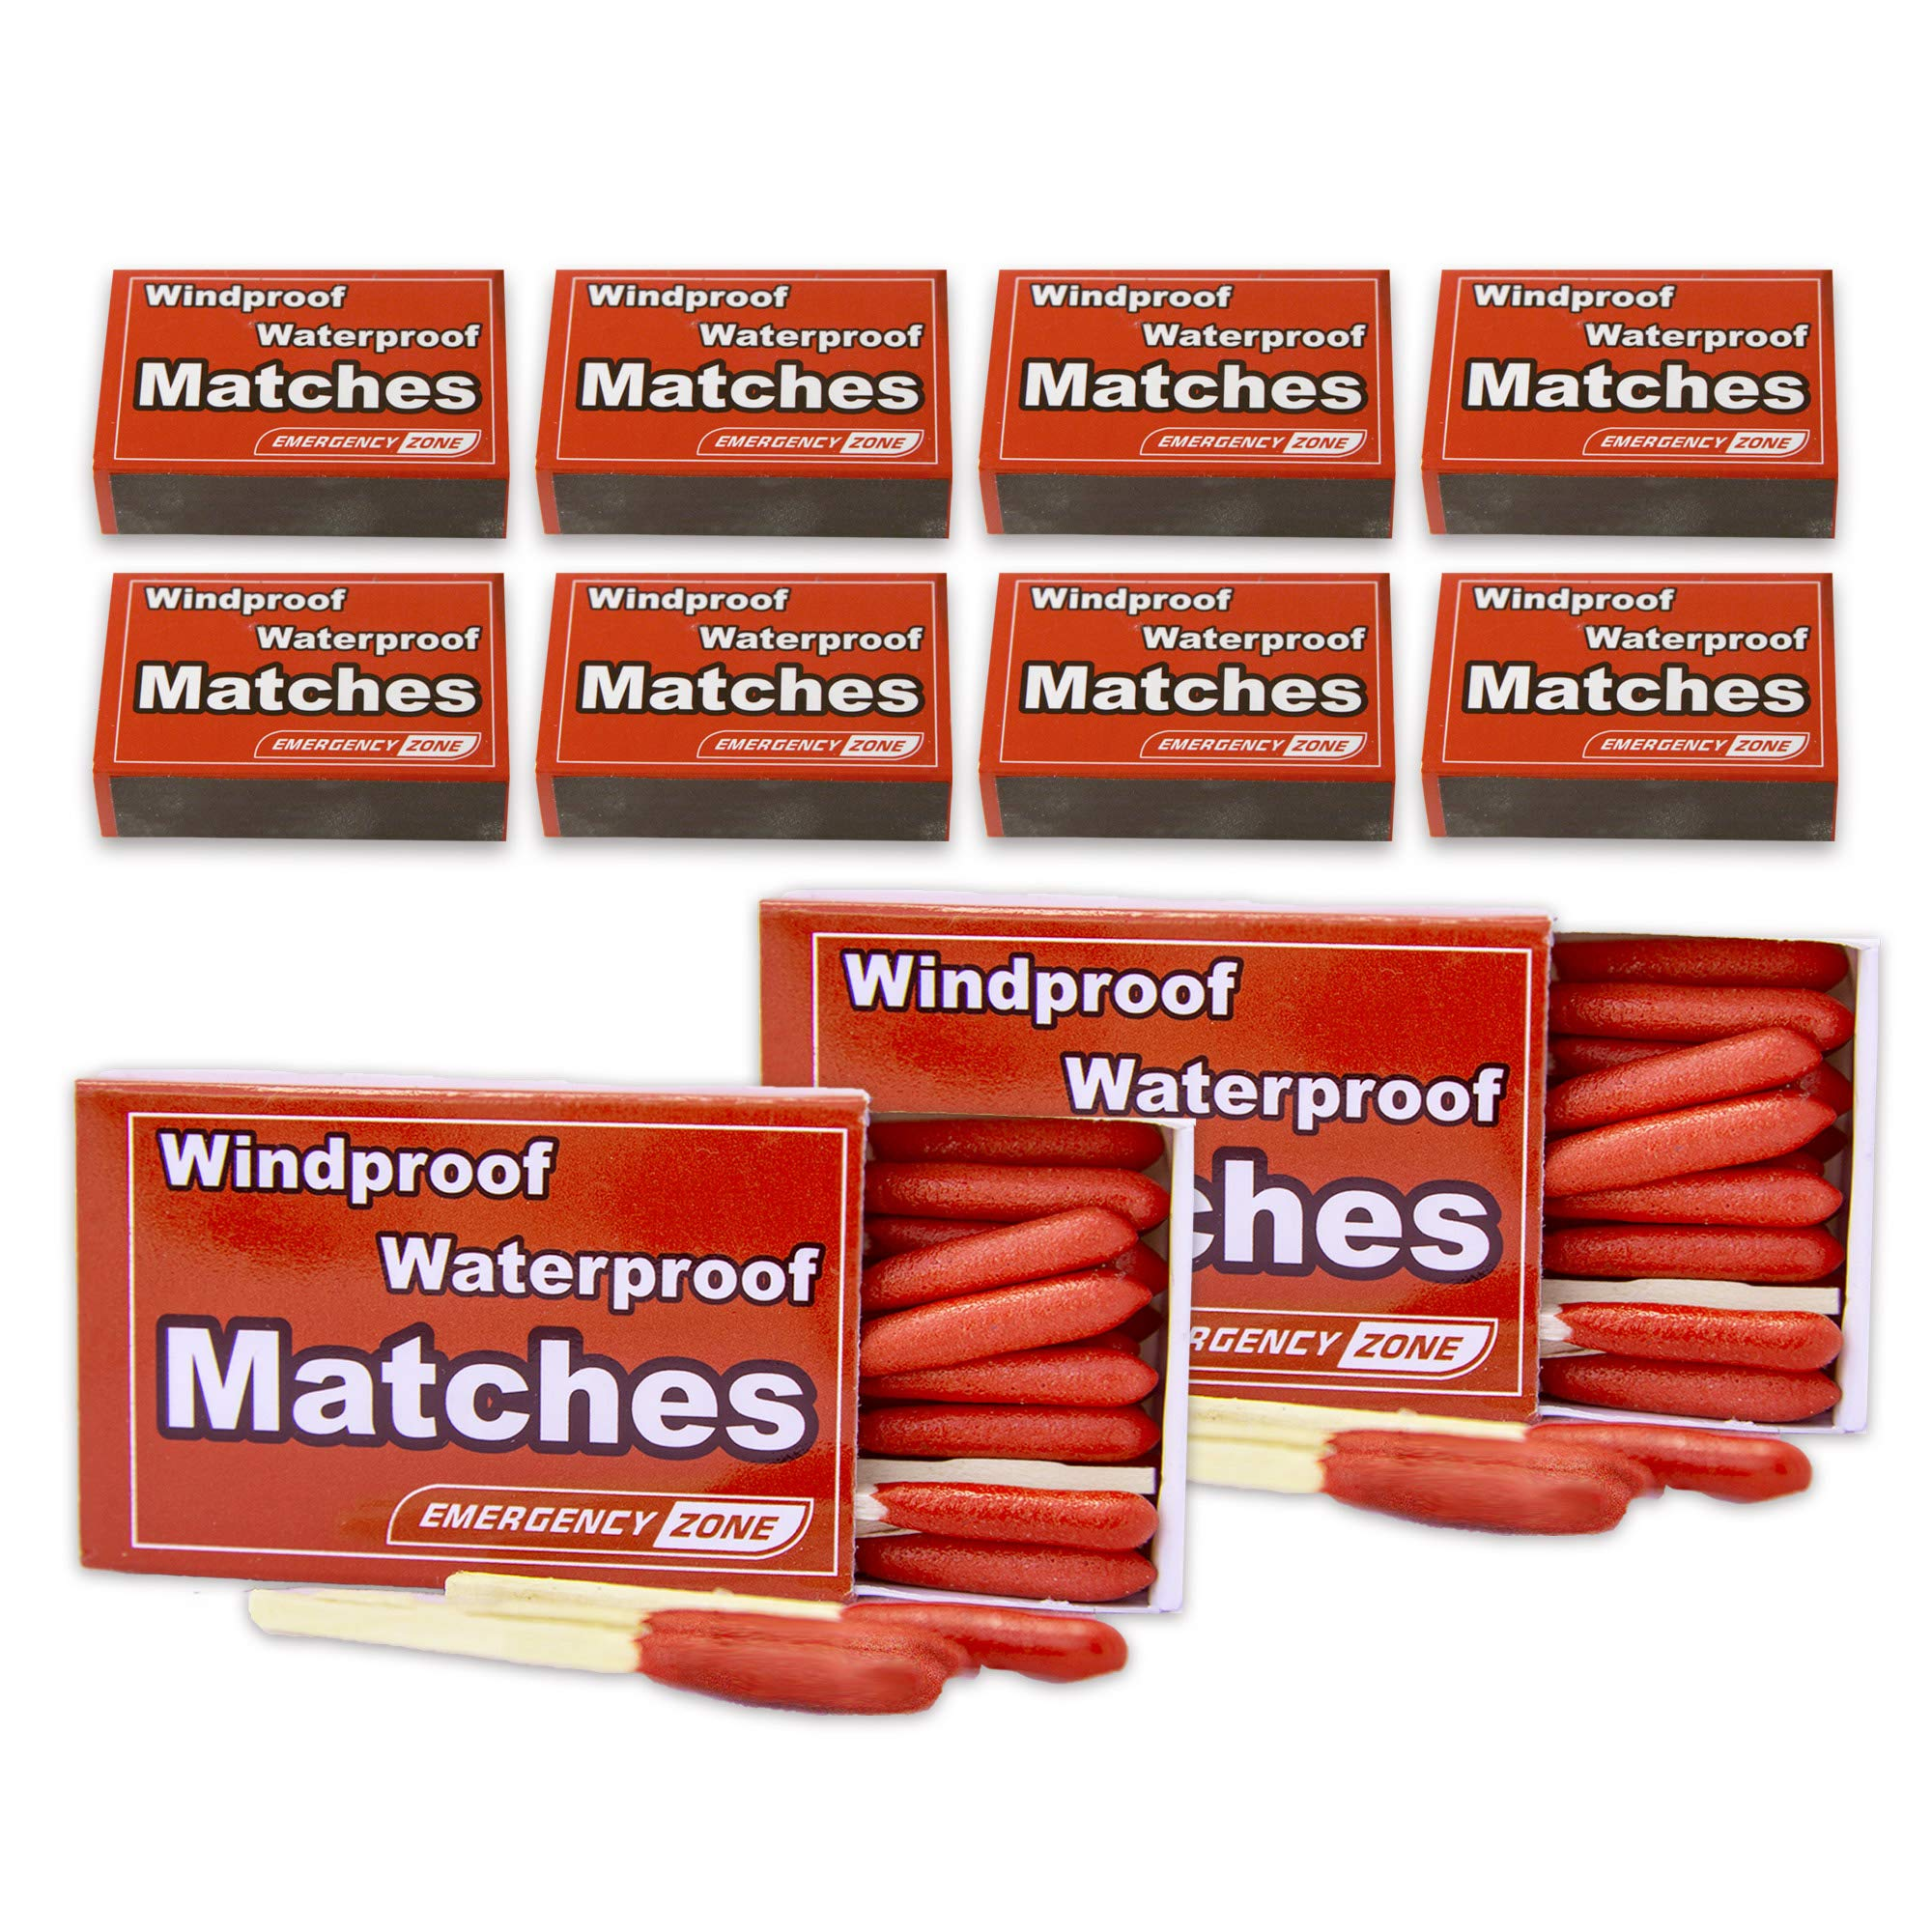 Emergency Zone Matches Waterproof & Wind/Waterproof Matches. Stormproof. Bulk Options. Available in 3, 5, 10, 50, and 100 Packs (Stormproof, 10 Pack)